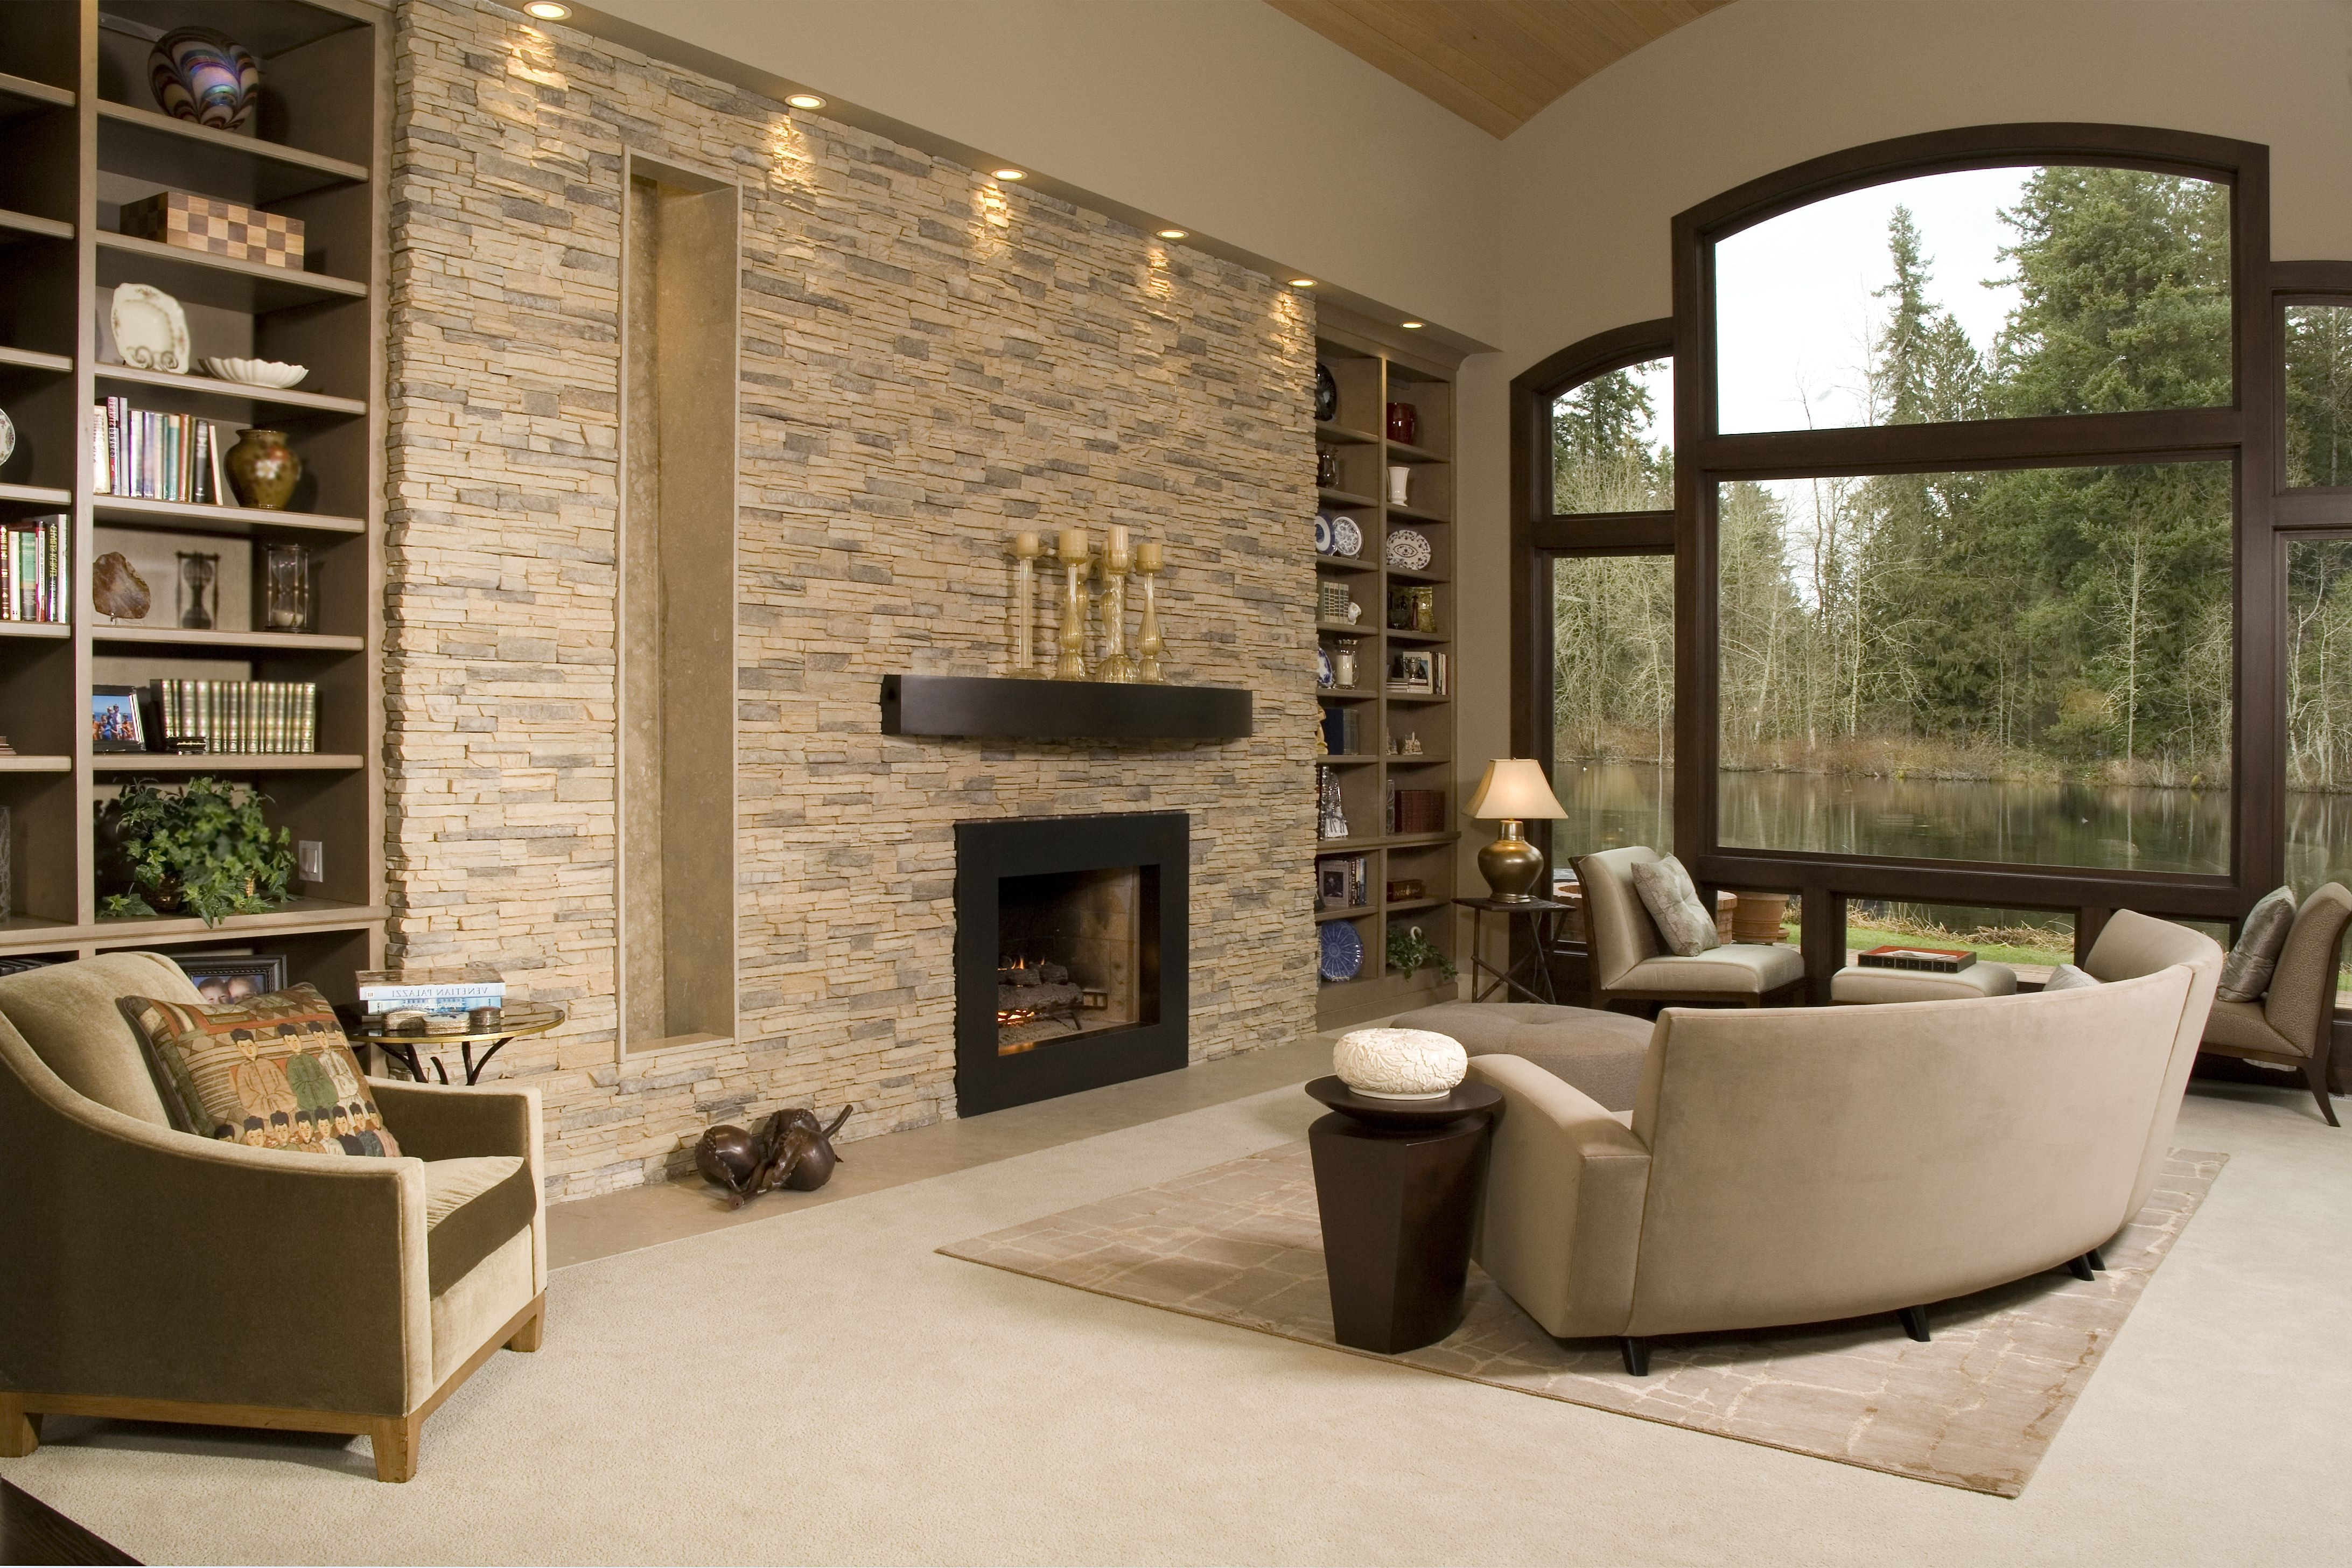 Best ideas about Stacked Stone Accent Wall . Save or Pin Best 15 of Neutral Color Wall Accents Now.